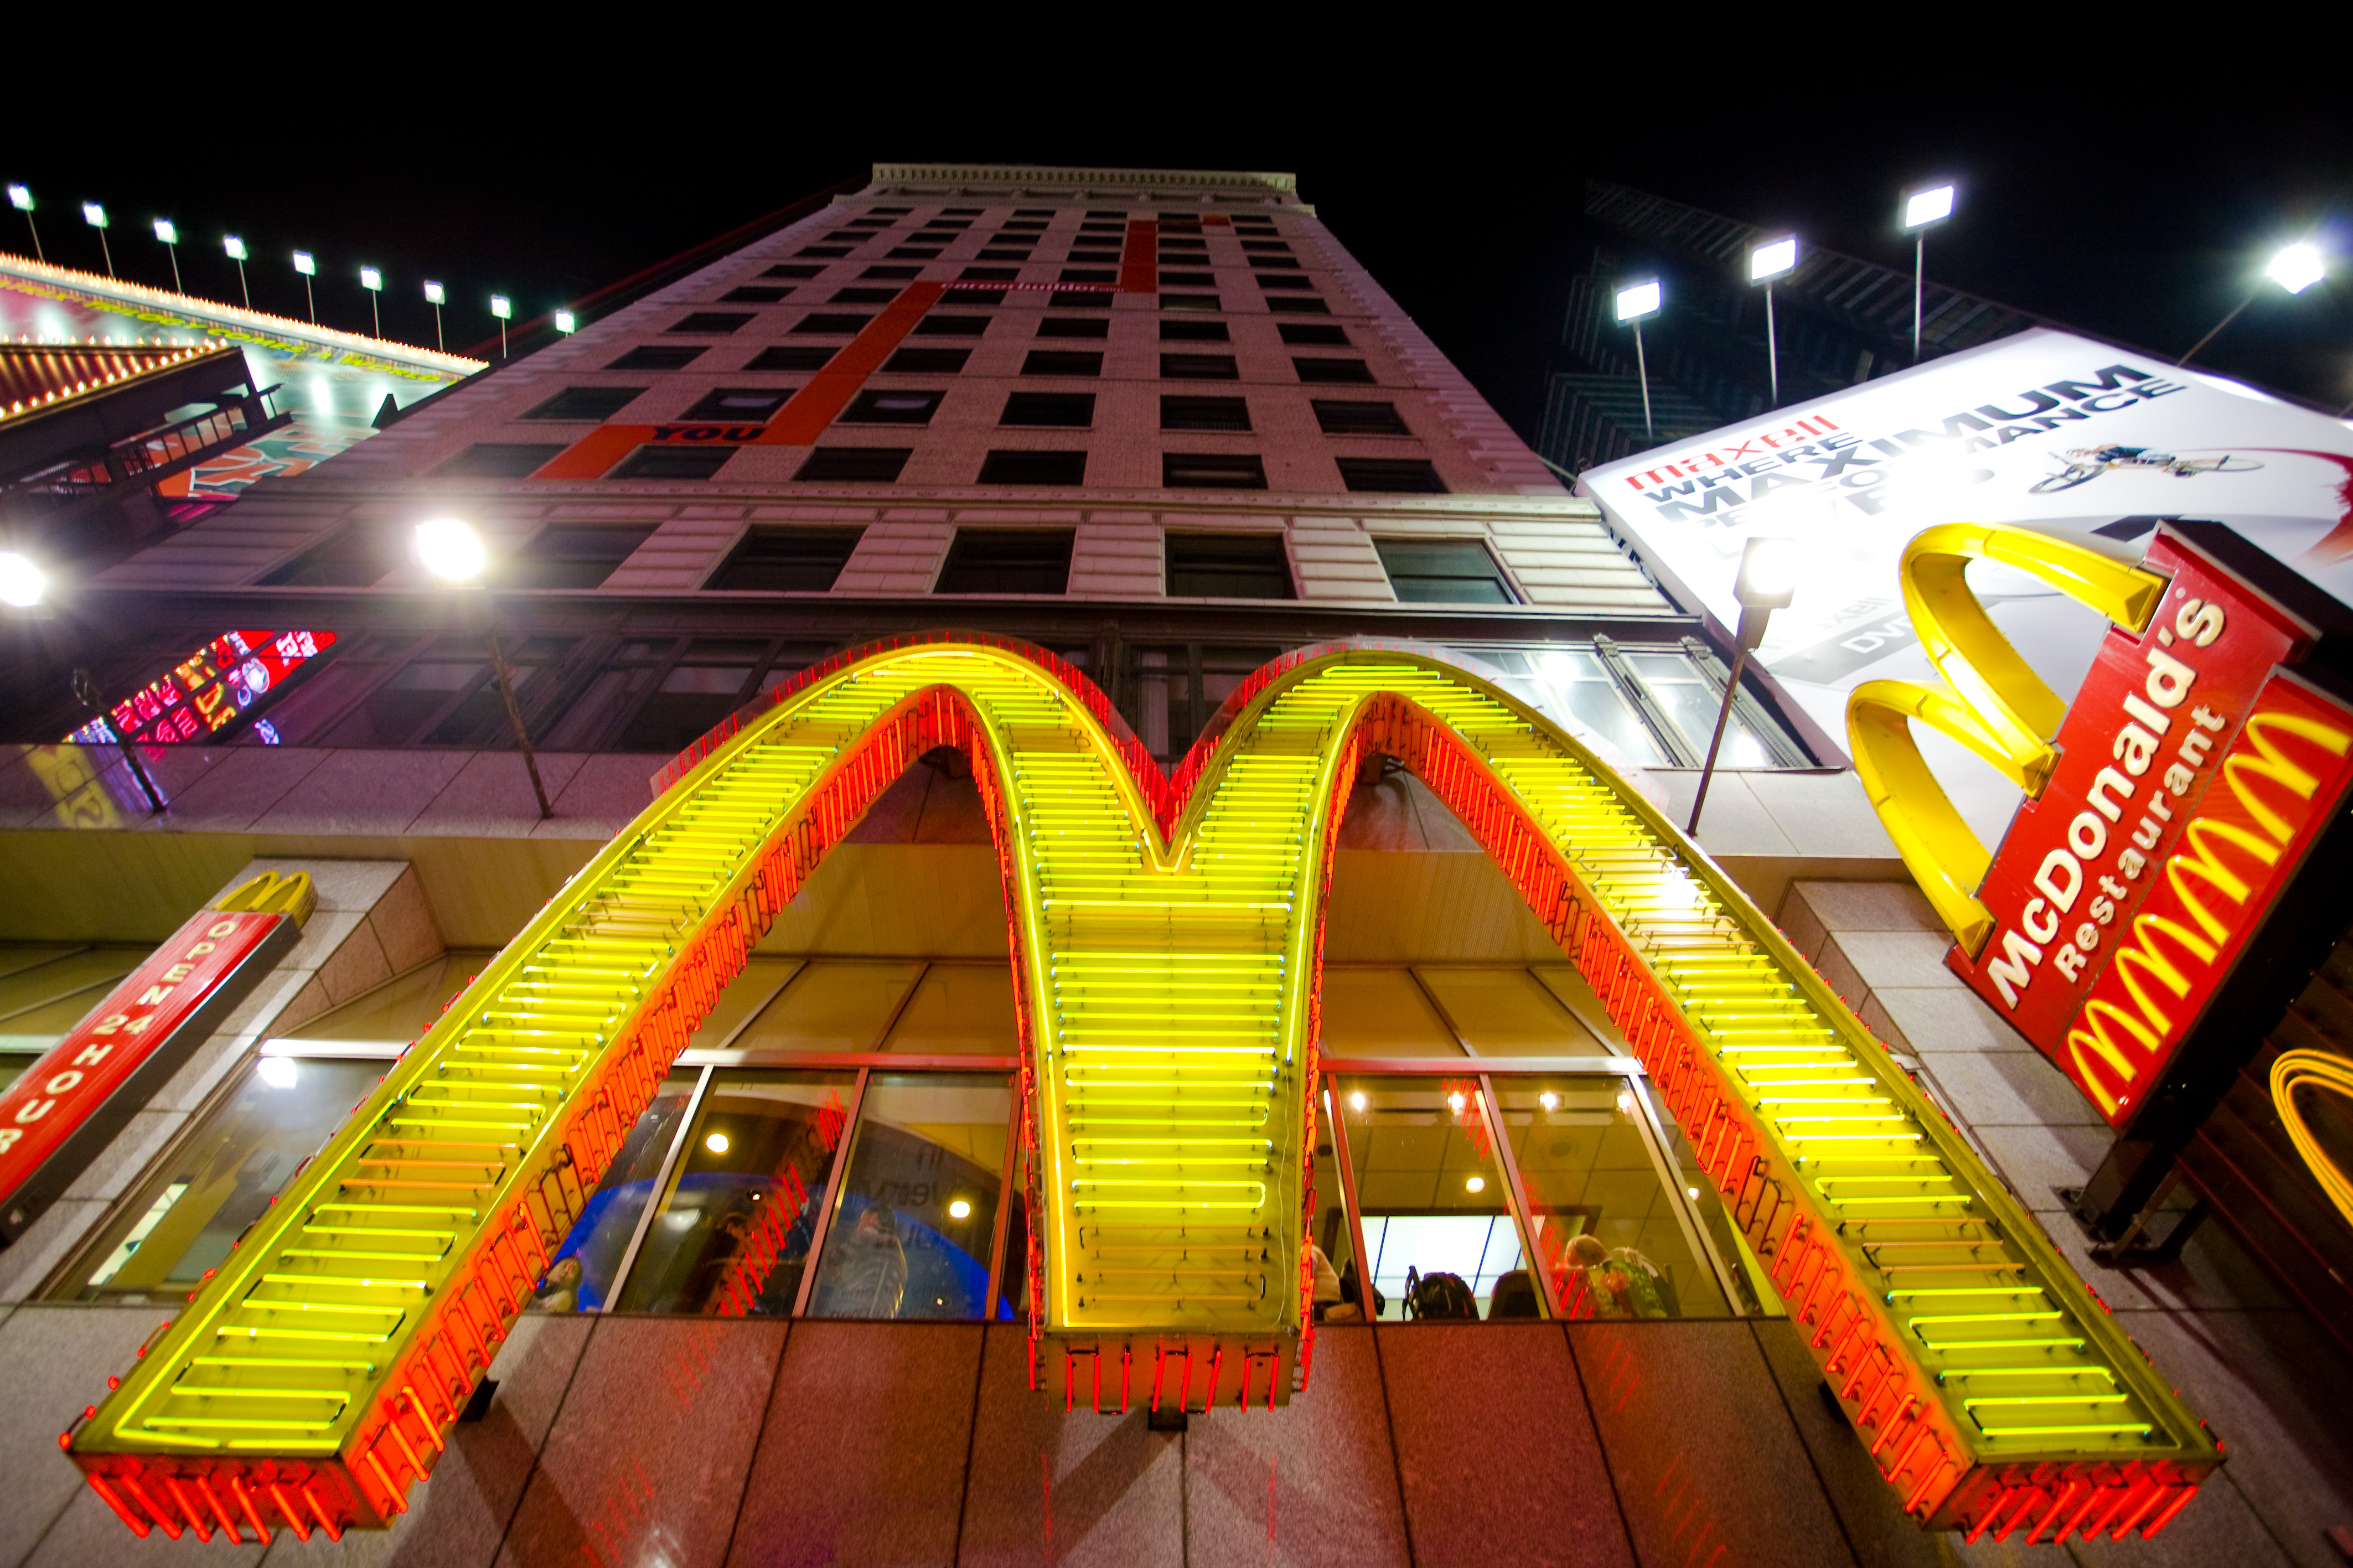 the golden arches Find great deals on ebay for mcdonalds golden arches in collectible mcdonald's advertisements shop with confidence.